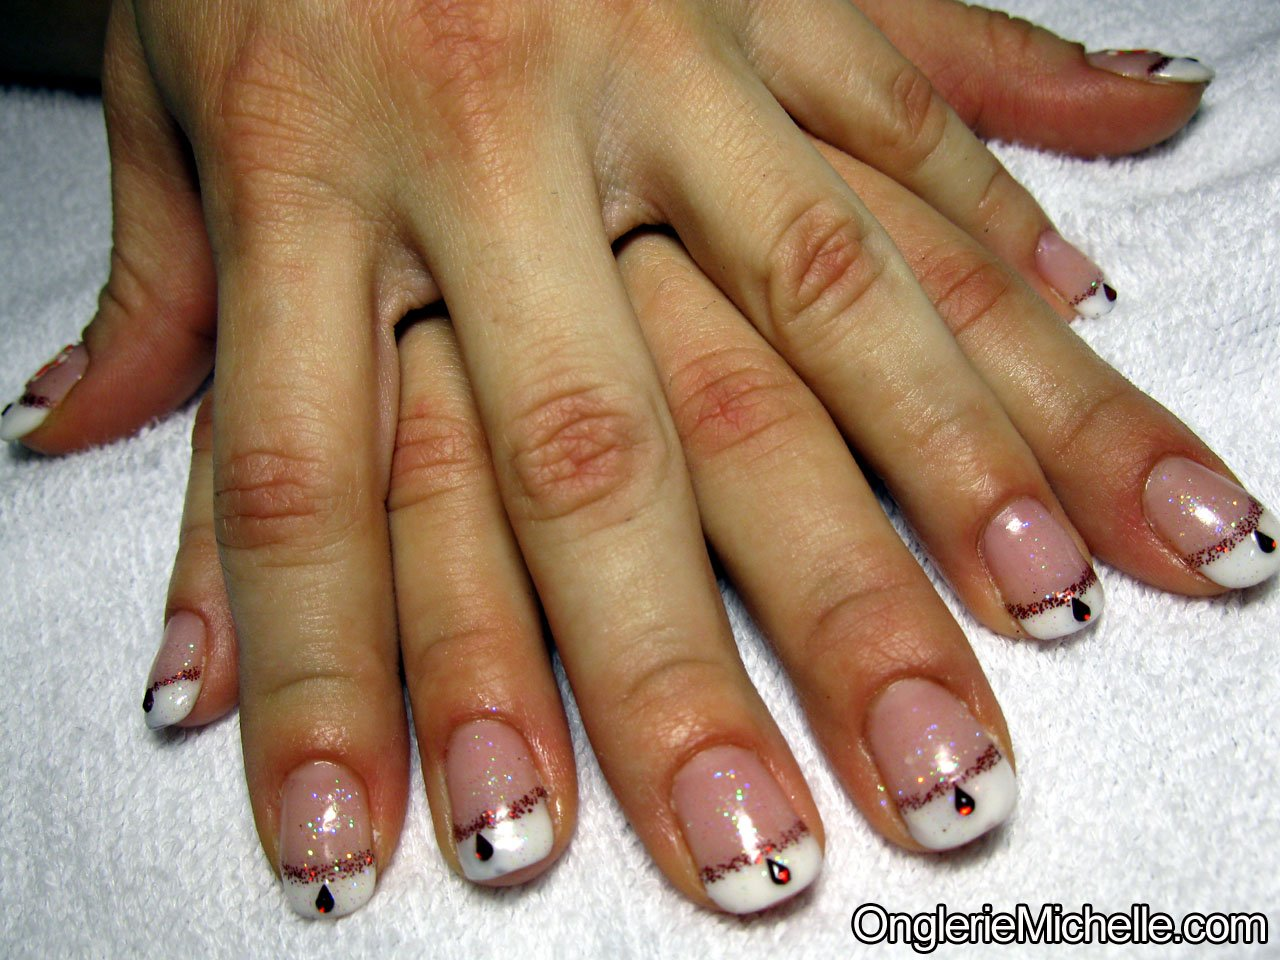 Diy: remove gel nails | health beauty spot, When people removing gel